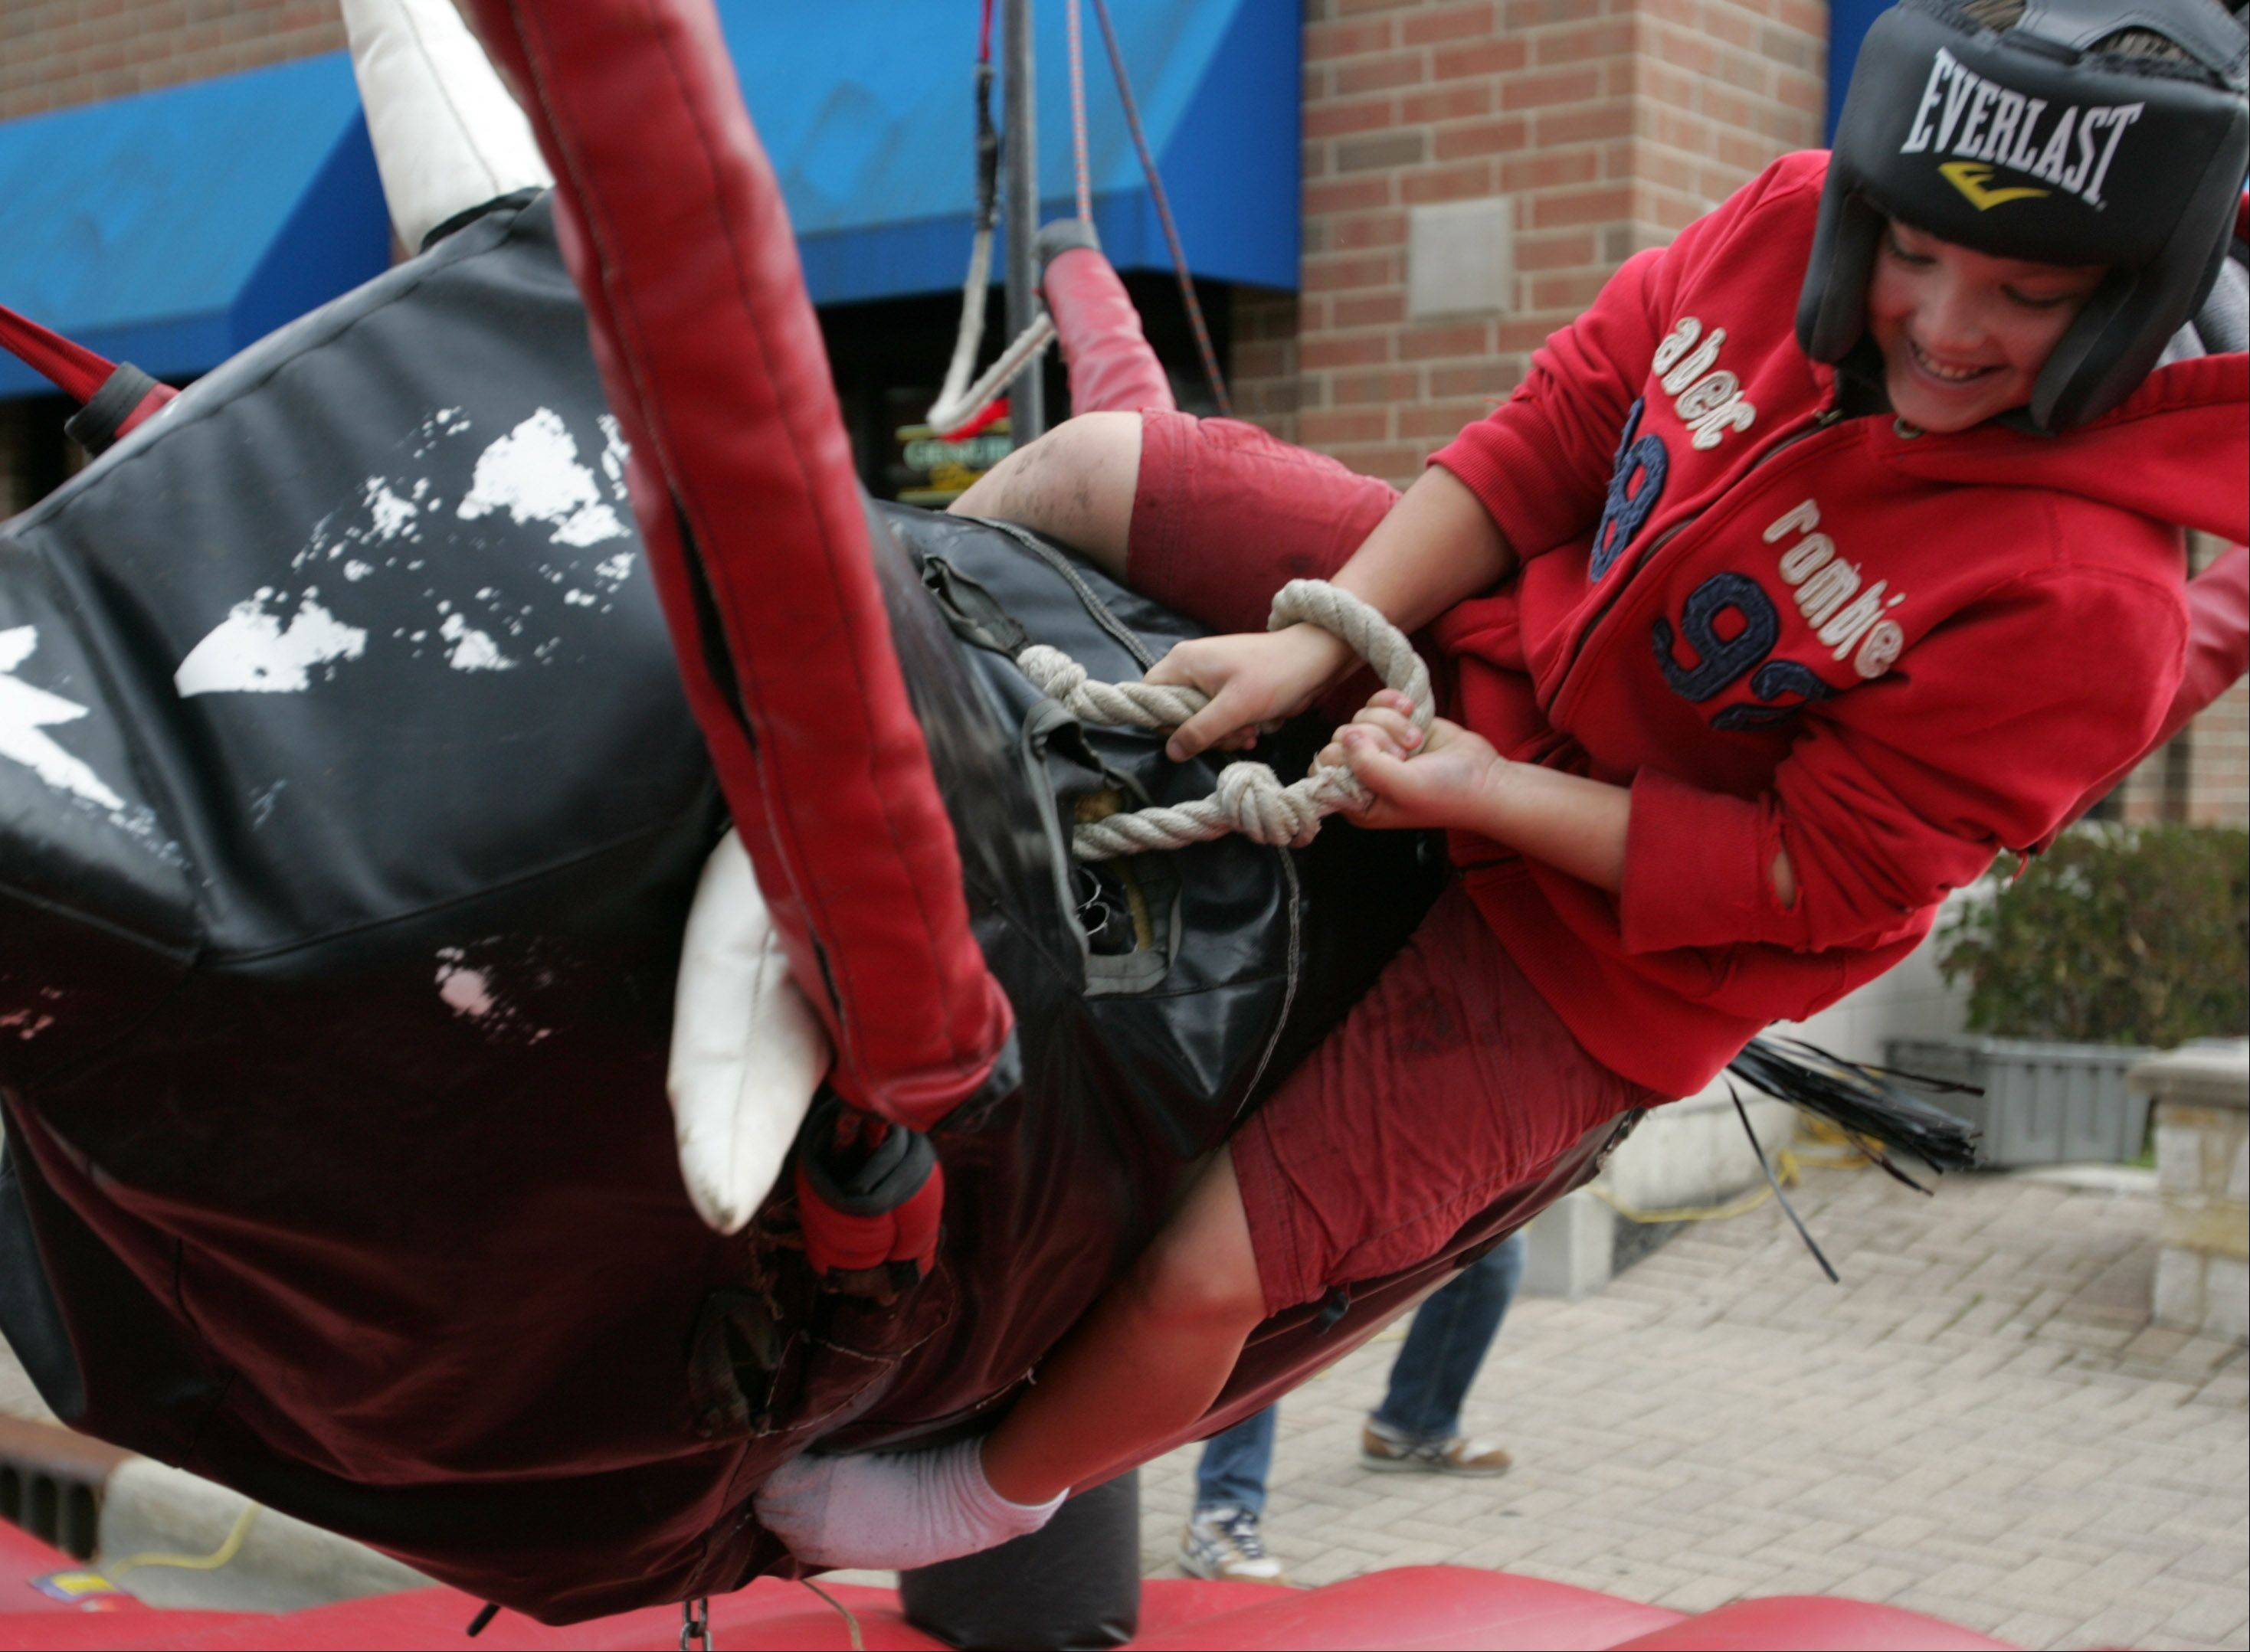 Keith Gill, 12, from Elmhurst tries to hold on while riding a fake bull during the Spooktacular Fall Festival Sunday in Lombard. Activities included a rock wall, carnival games, and trick-or-treating through local businesses.